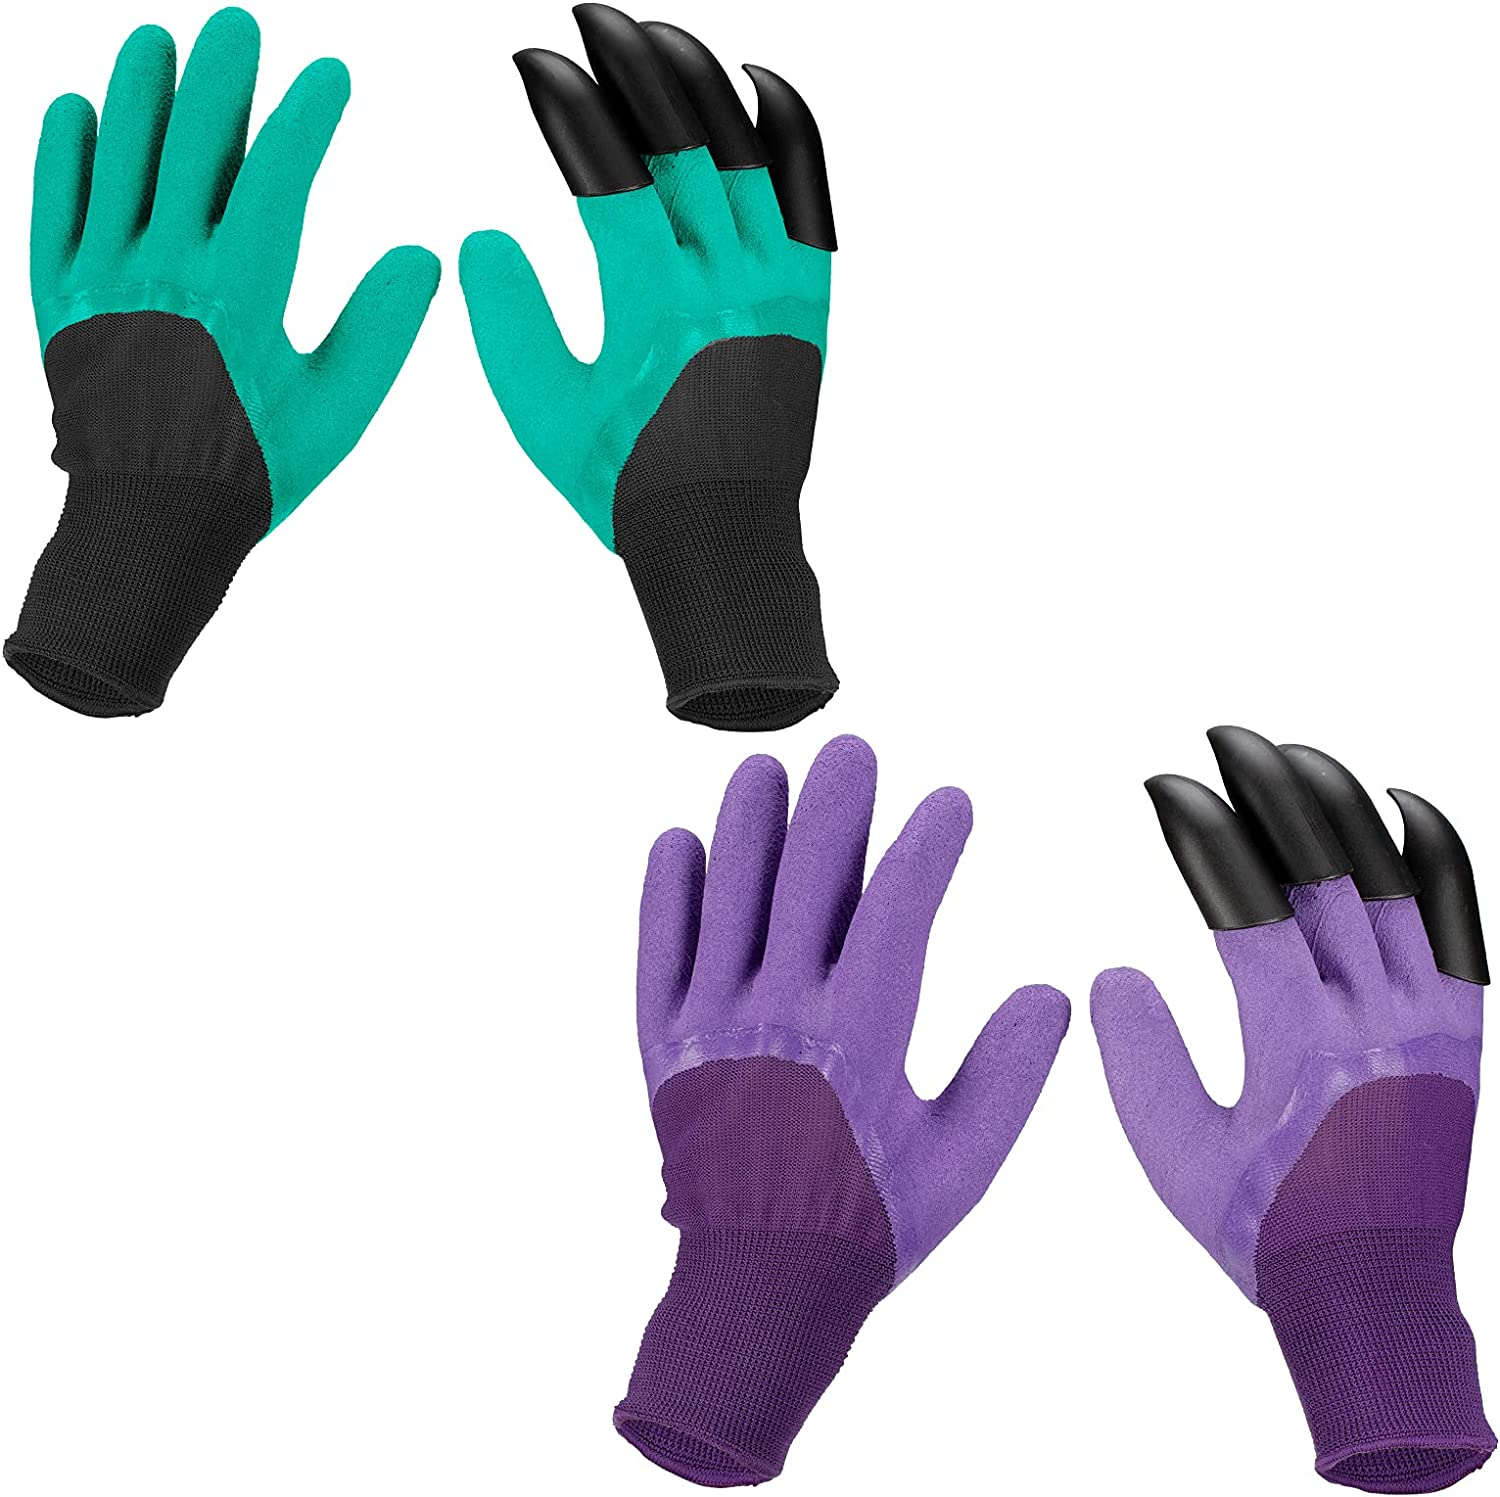 2 Pairs Garden Genie Gloves With Claws, Green Waterproof Garden Gloves with Single Claw for Digging Planting Weeding Seeding Gardening Gifts For Women and Men Outdoor Yard Work (Green, Purple)